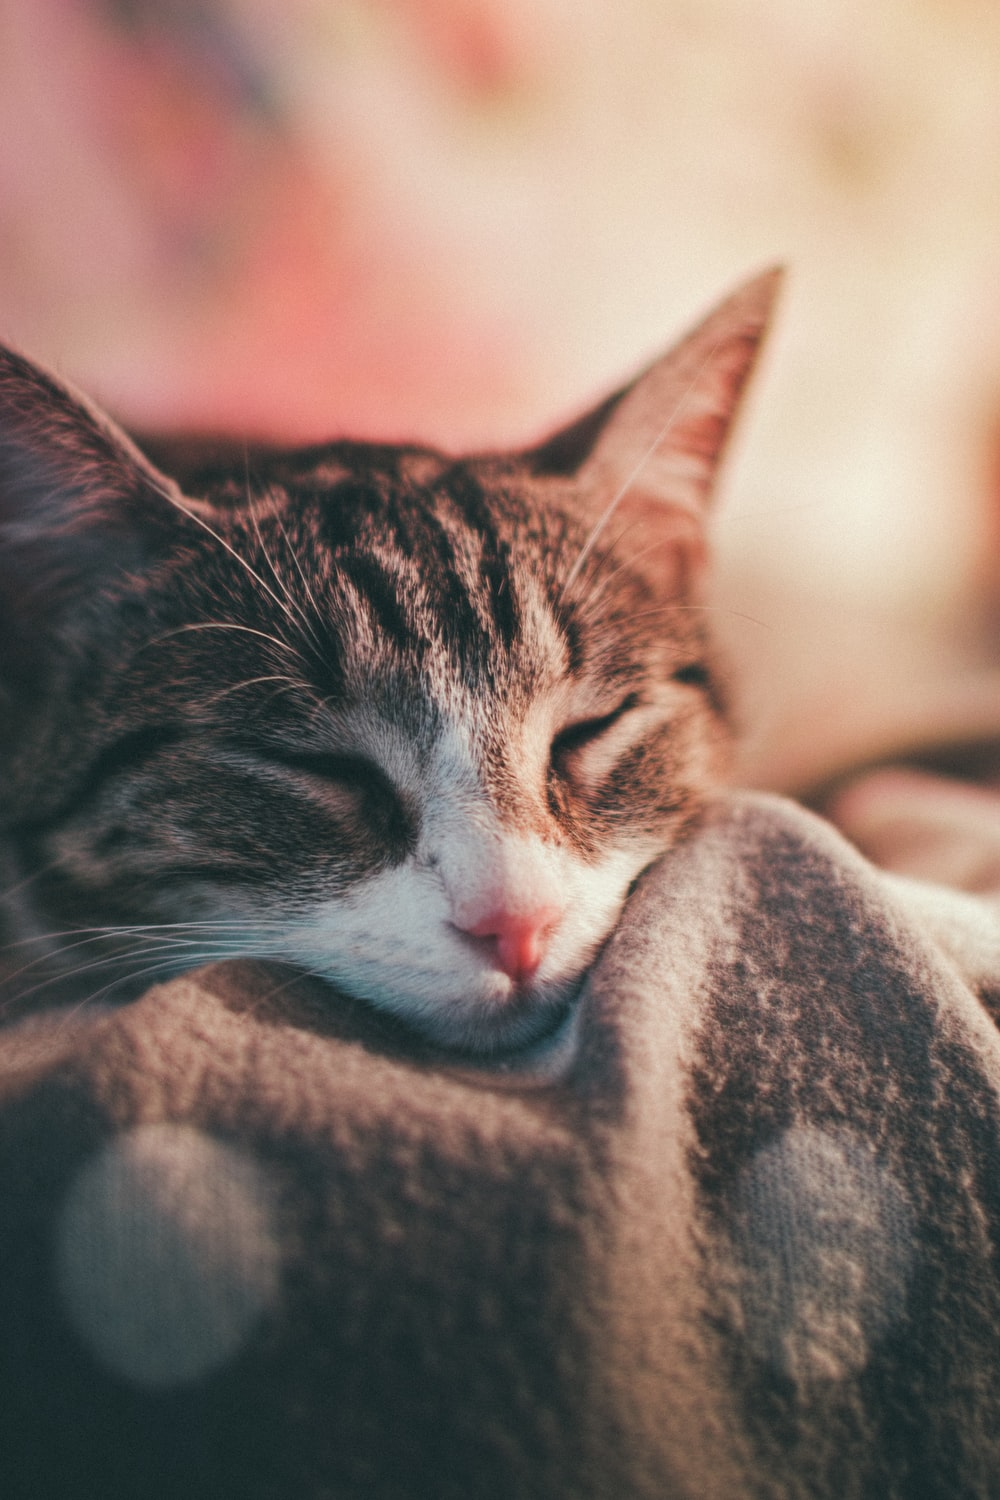 shallow focus photography of gray tabby cat sleeping on bed